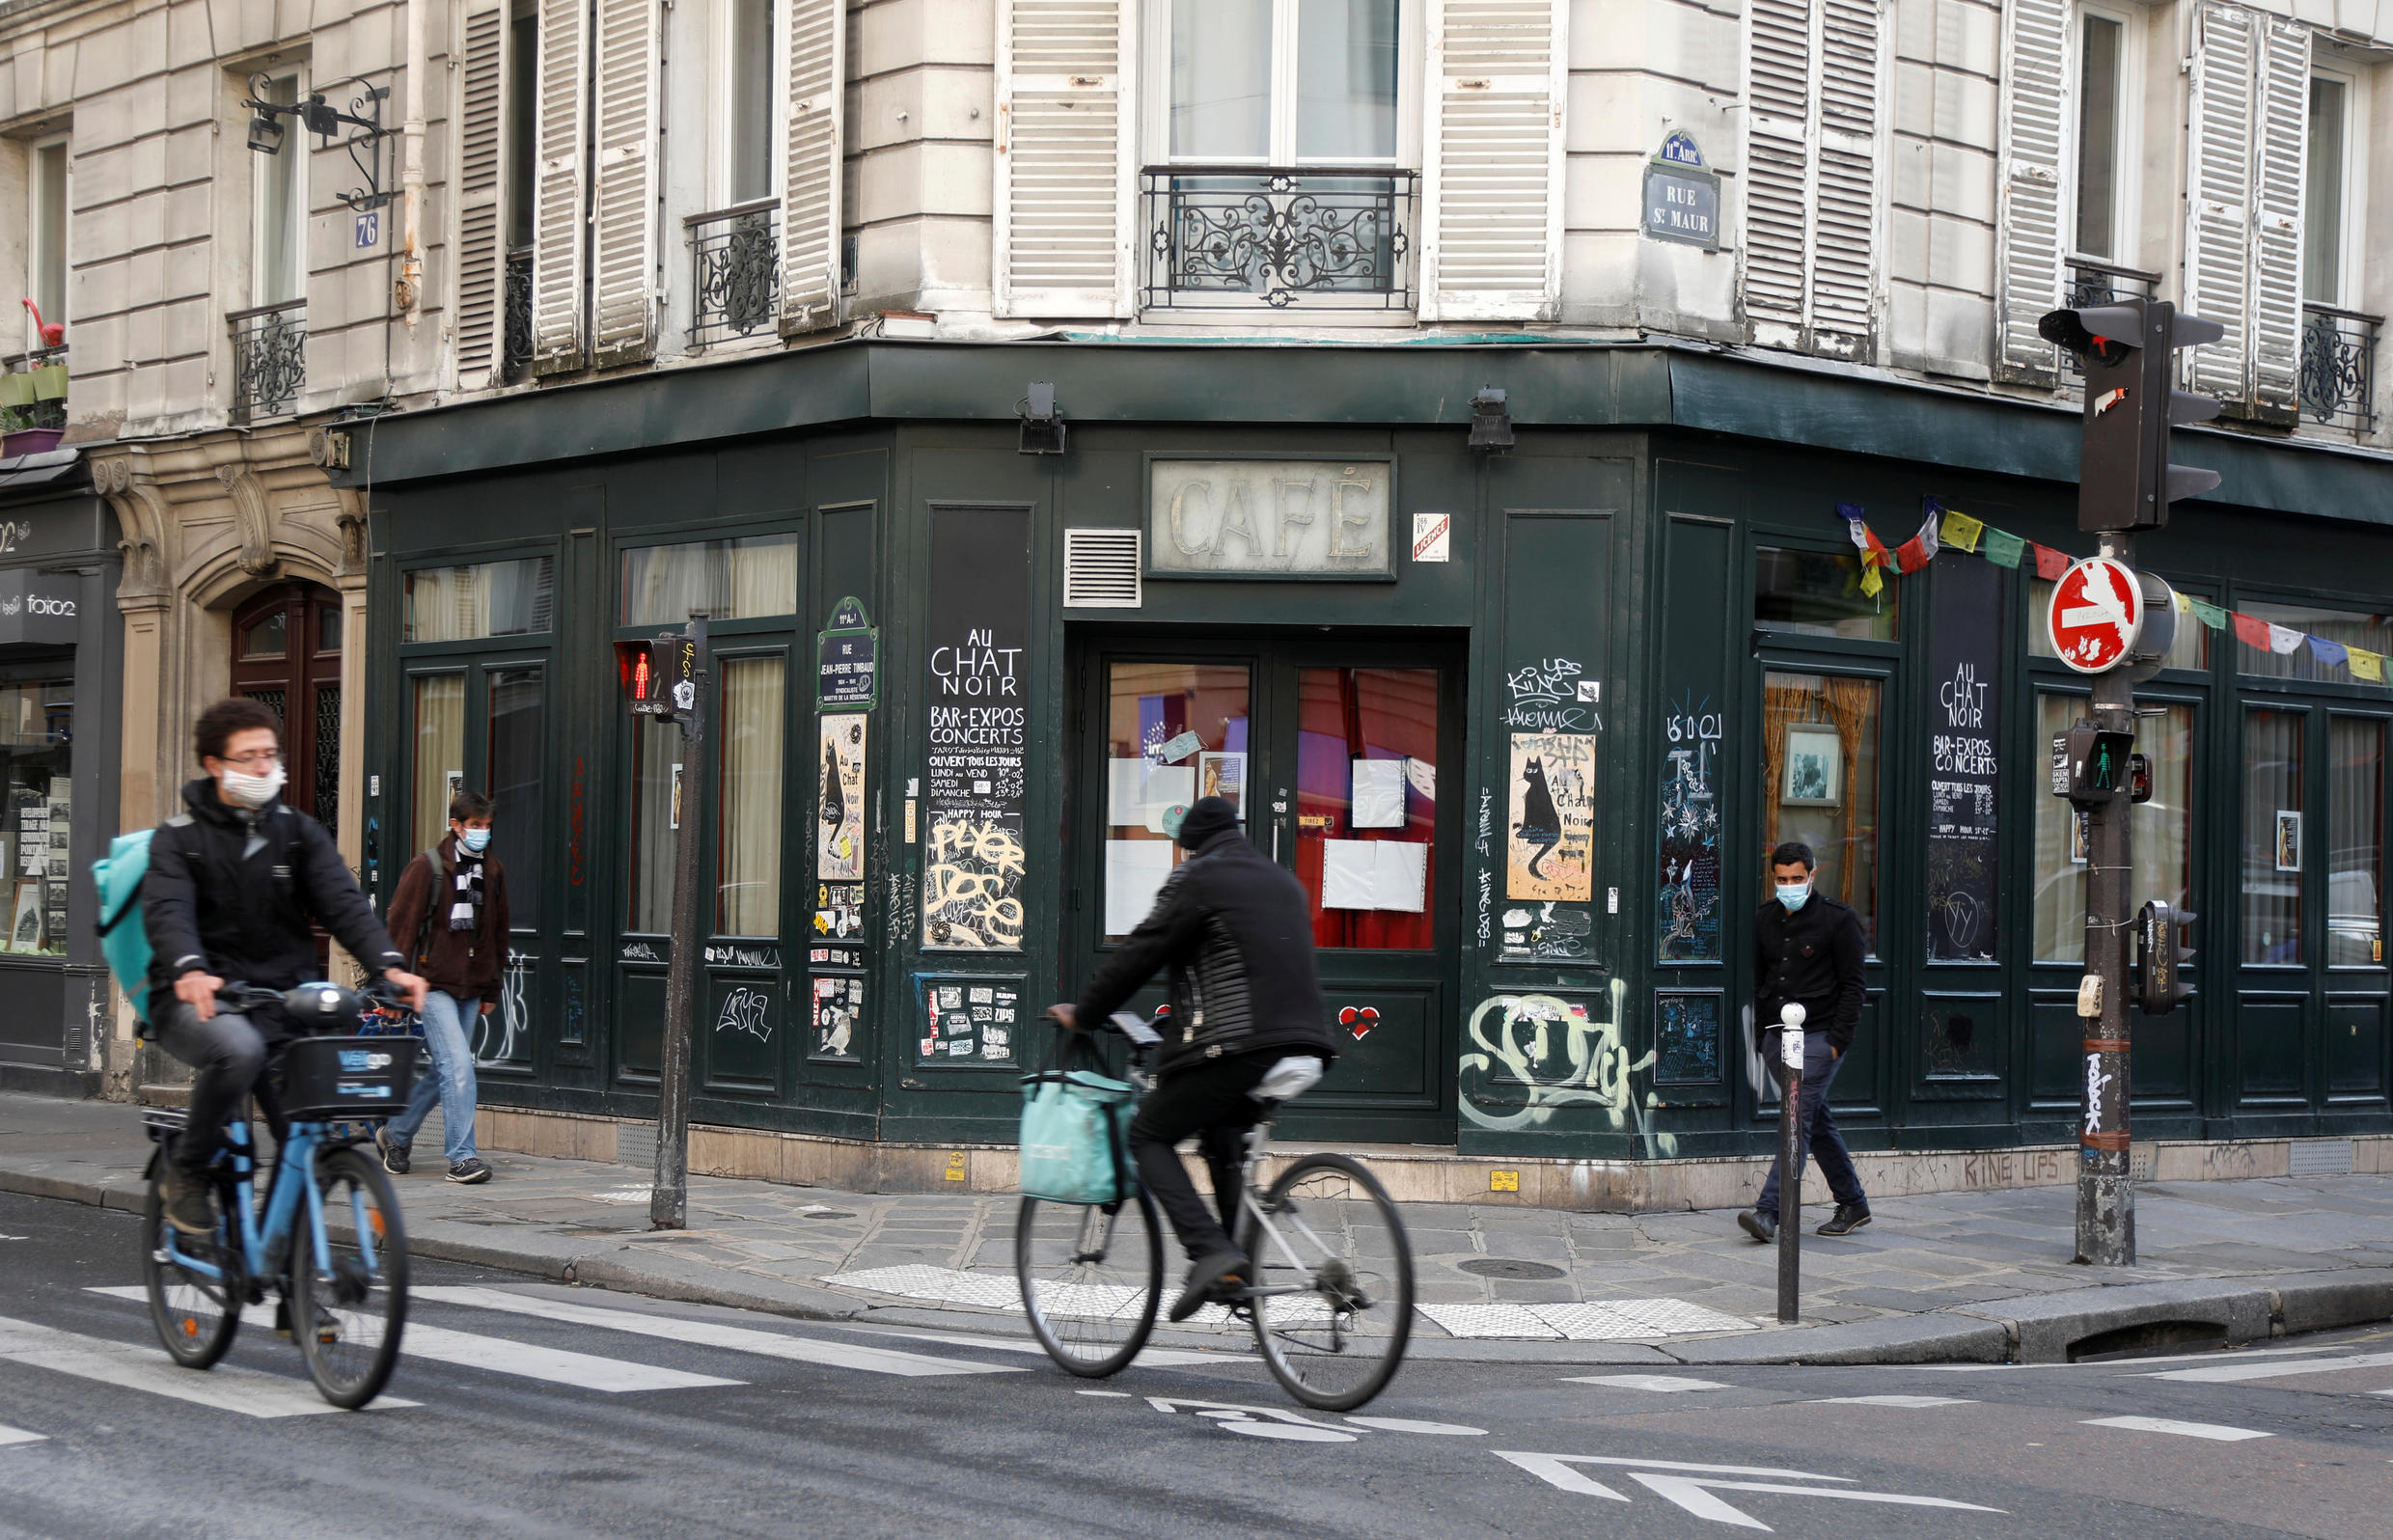 Cyclists ride past the Au Chat Noir bar, which was closed as part of stricter restrictions due to the spread of Covid-19, in Paris, France on October 13, 2020.